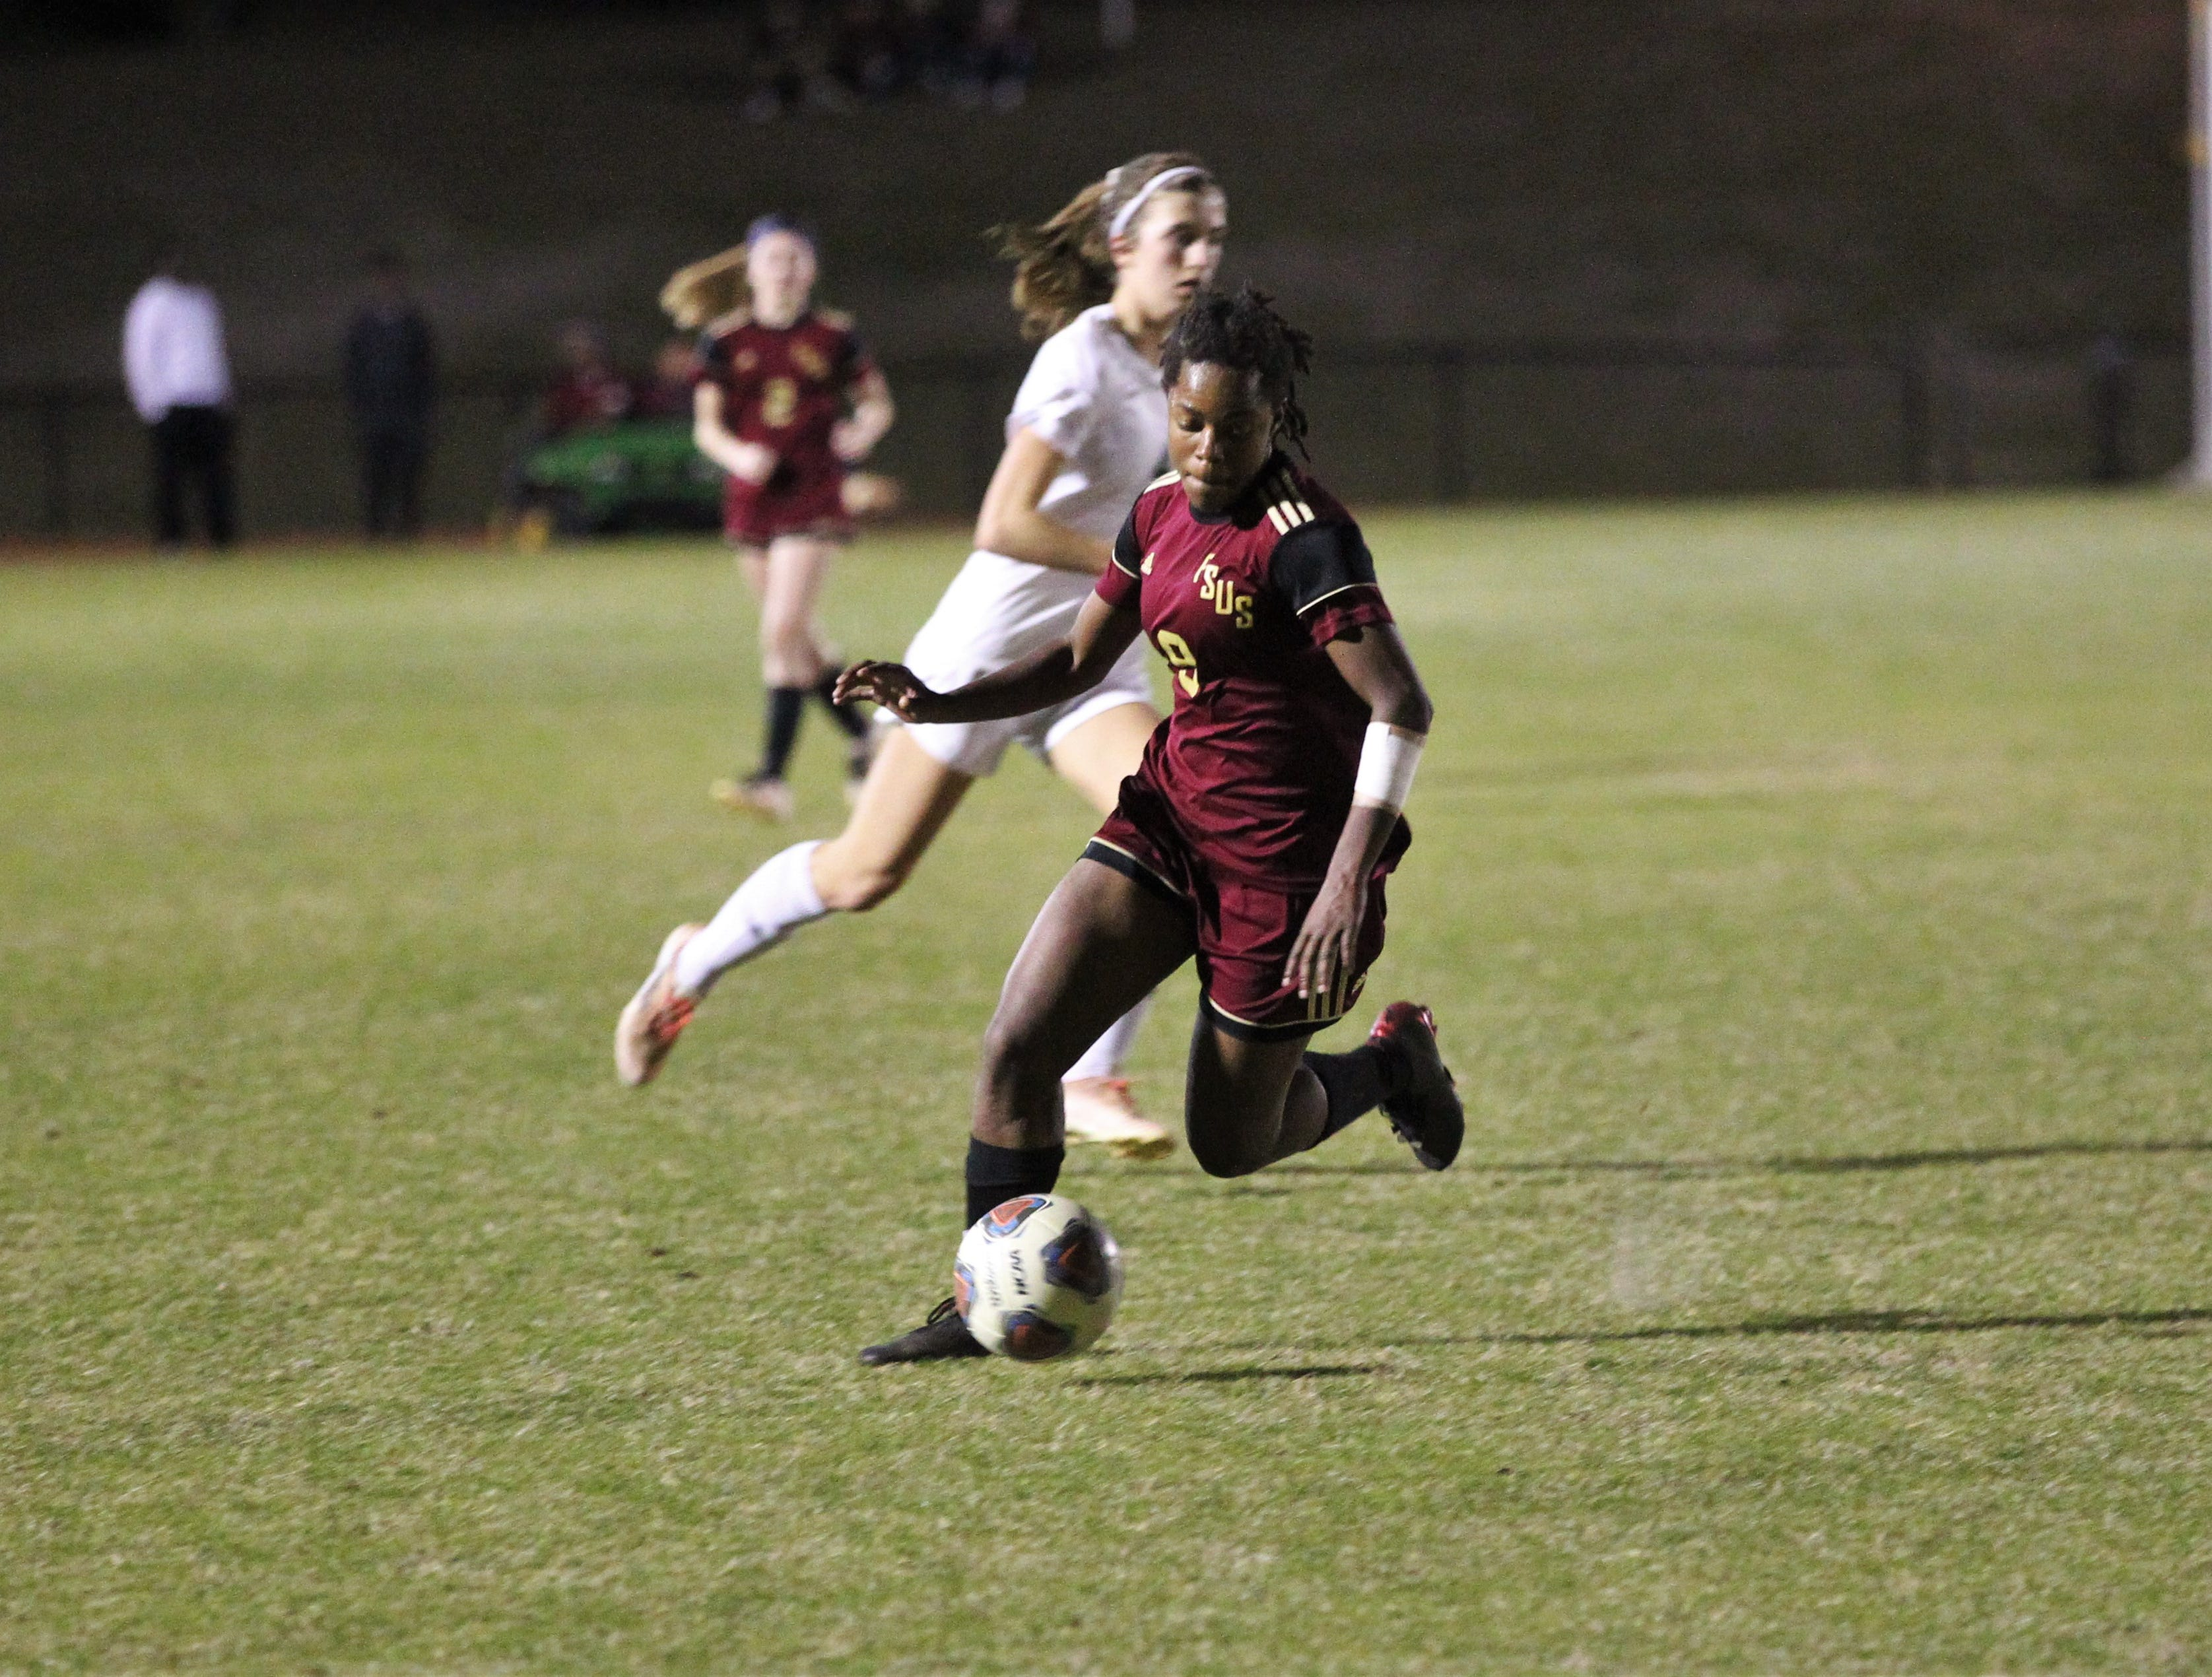 Florida High's Janae Scott dribbles in hte offensive third as South Walton edged the Seminoles 5-4 in a penalty-kick shootout during a Region 1-2A semifinal on Feb. 8, 2019.